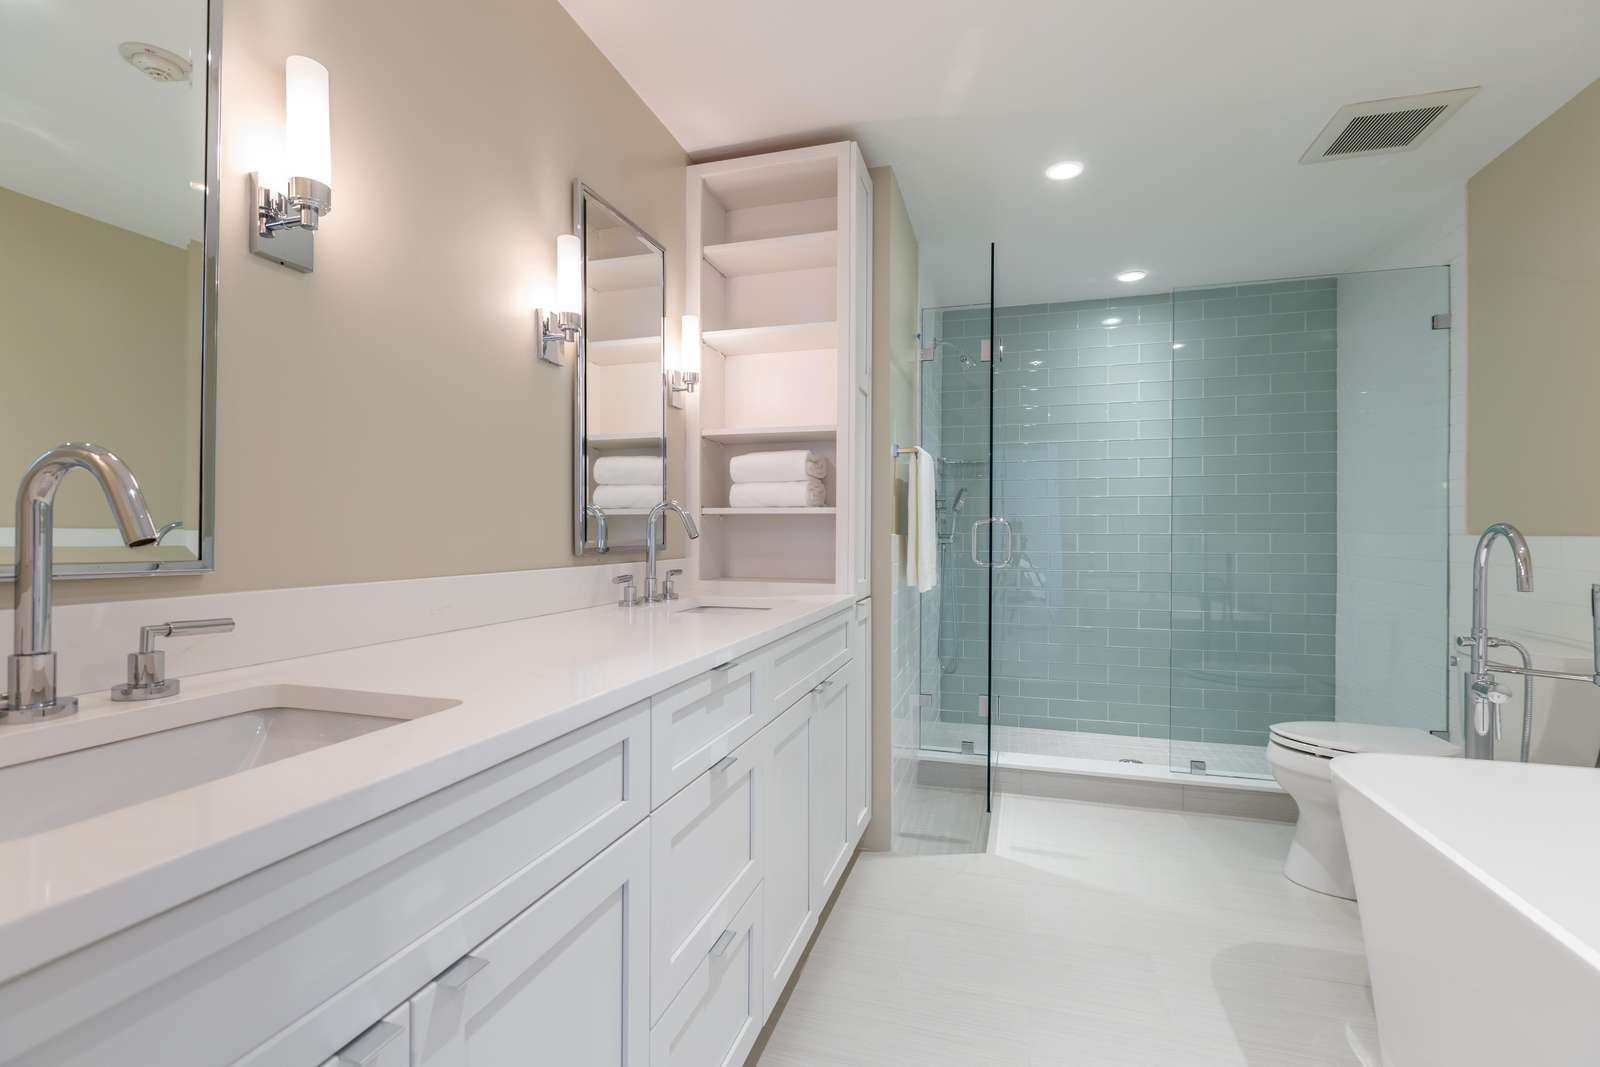 Master bathroom with dual vanity, tub, and tiled shower in 2 bedroom apartment